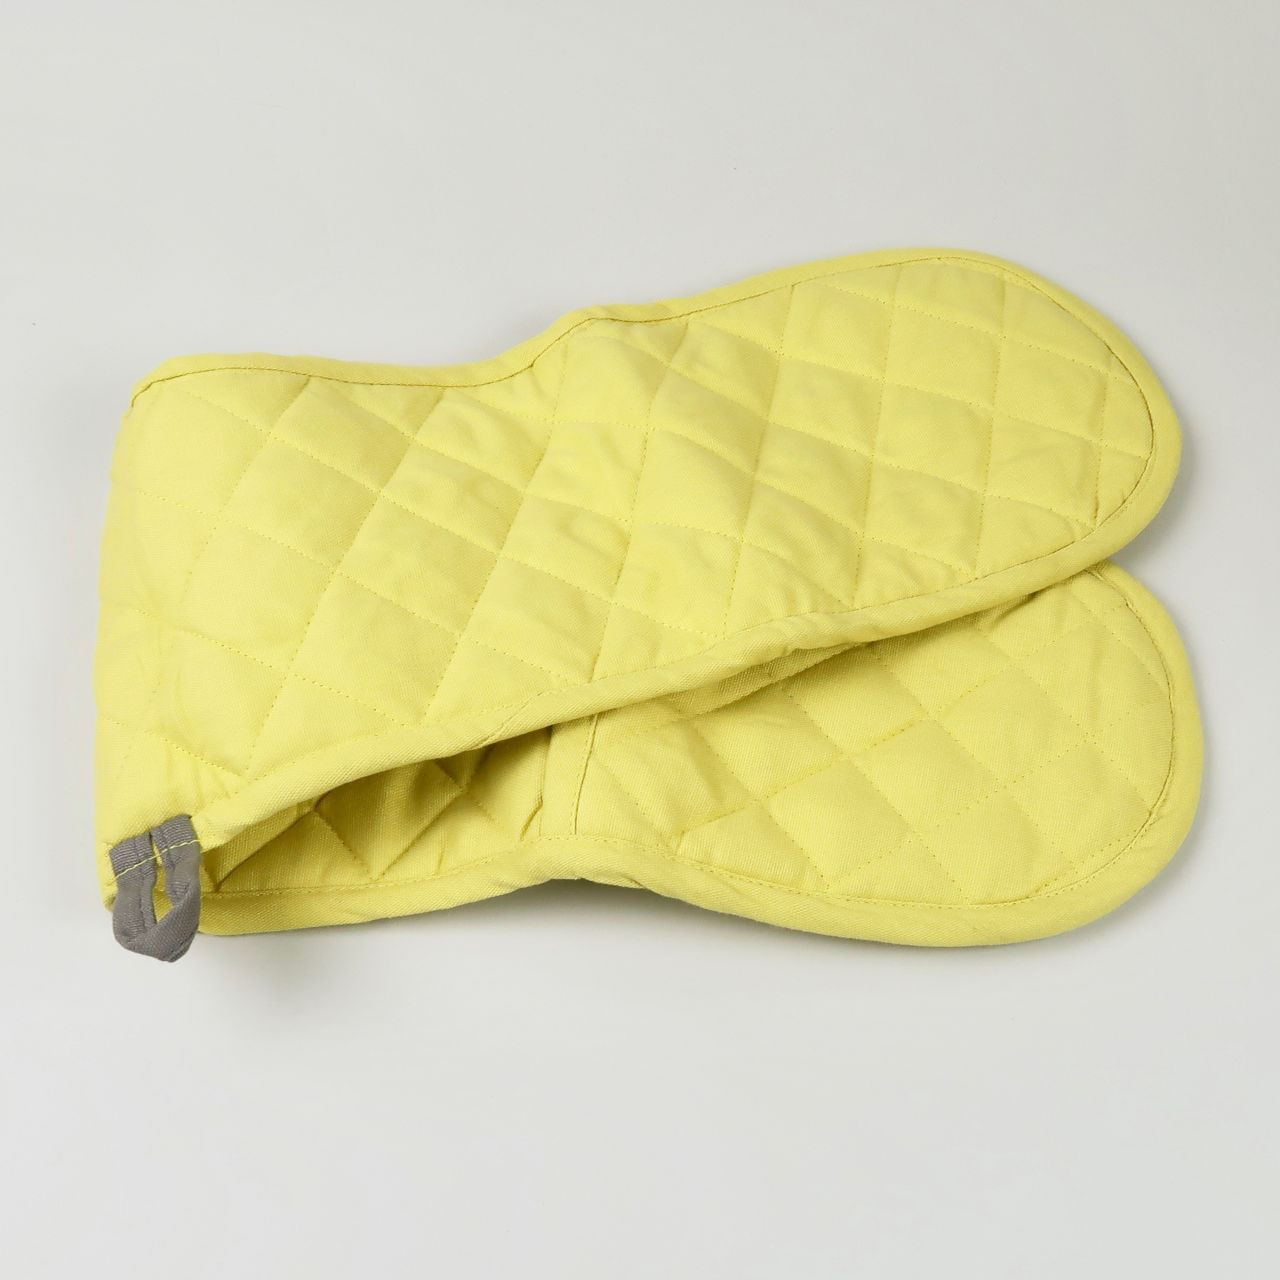 Double Oven Glove - Yellow